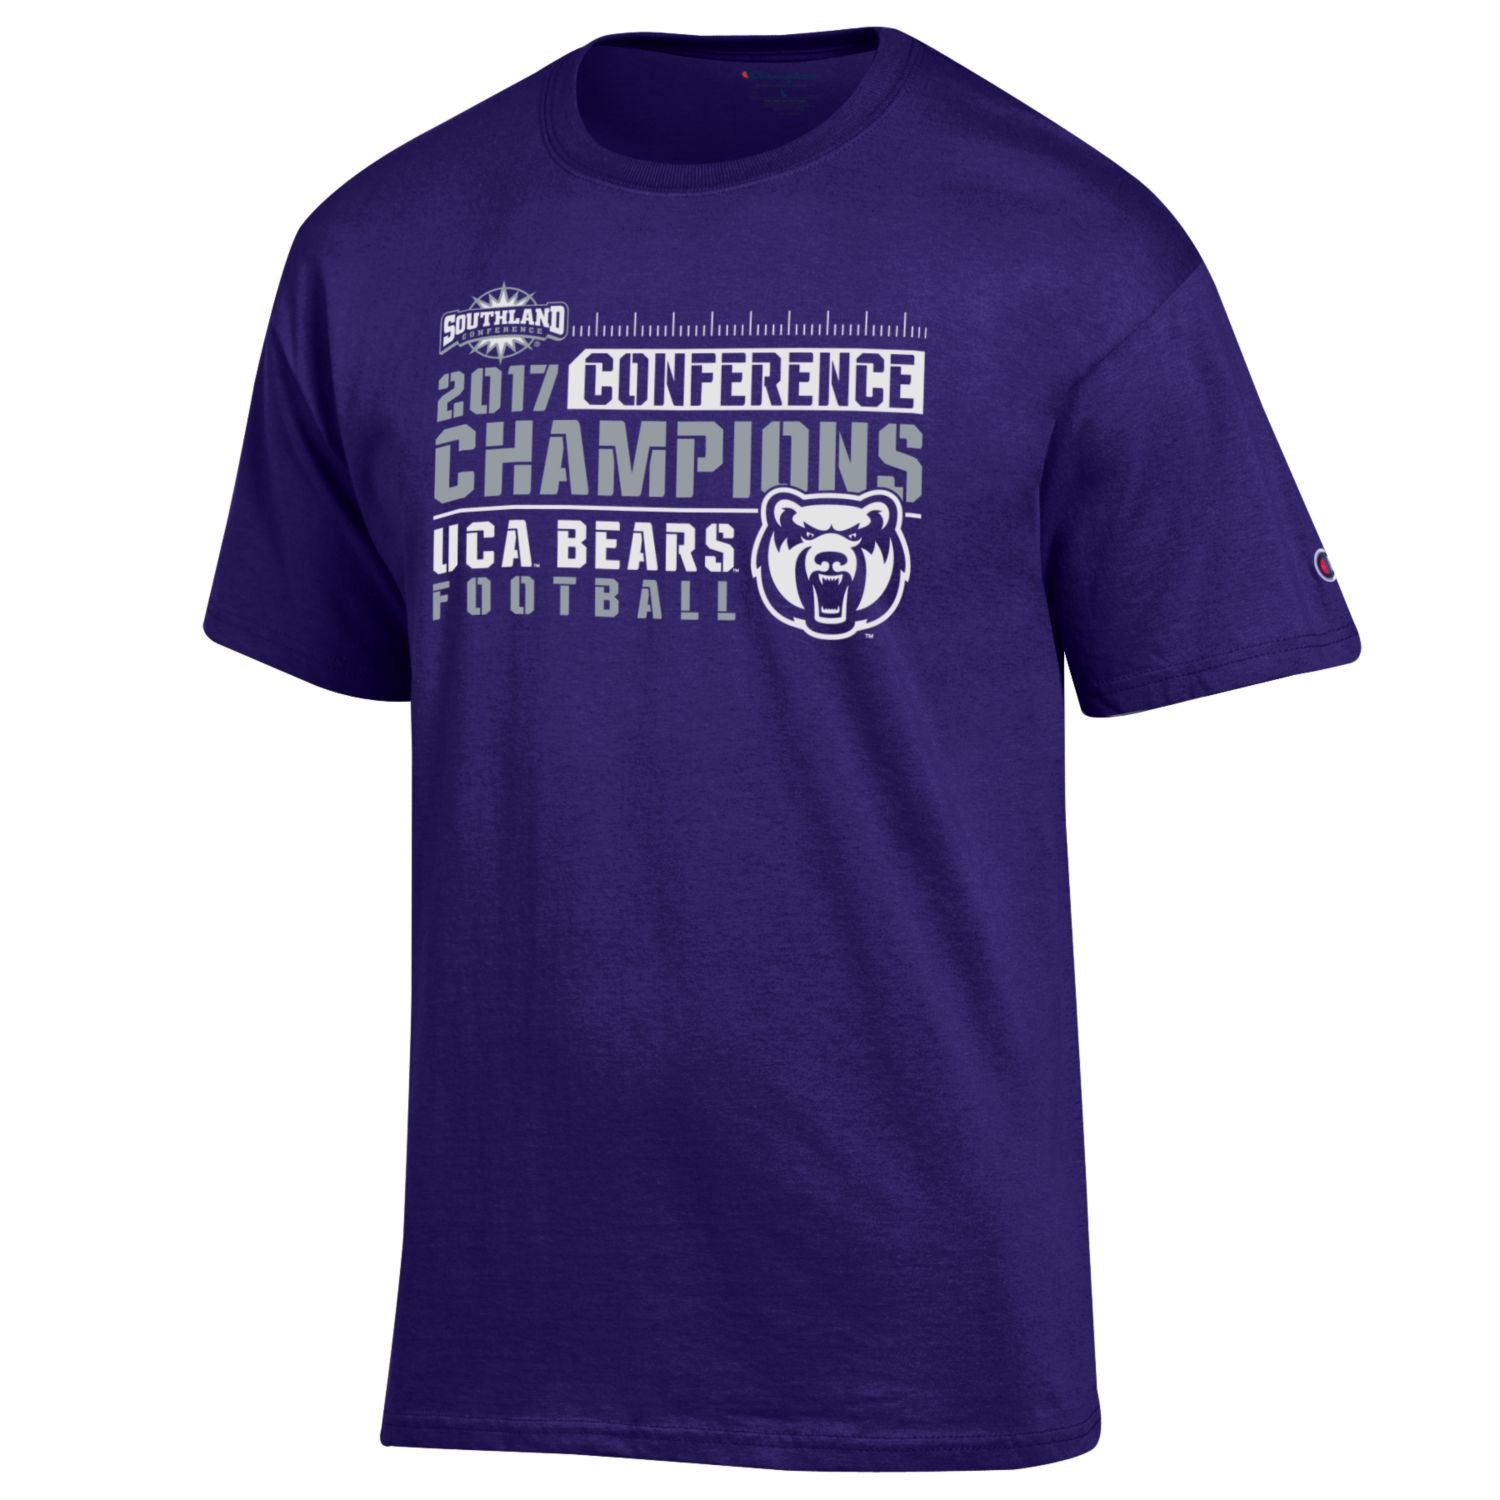 2017 Southland Conference Champs Tee